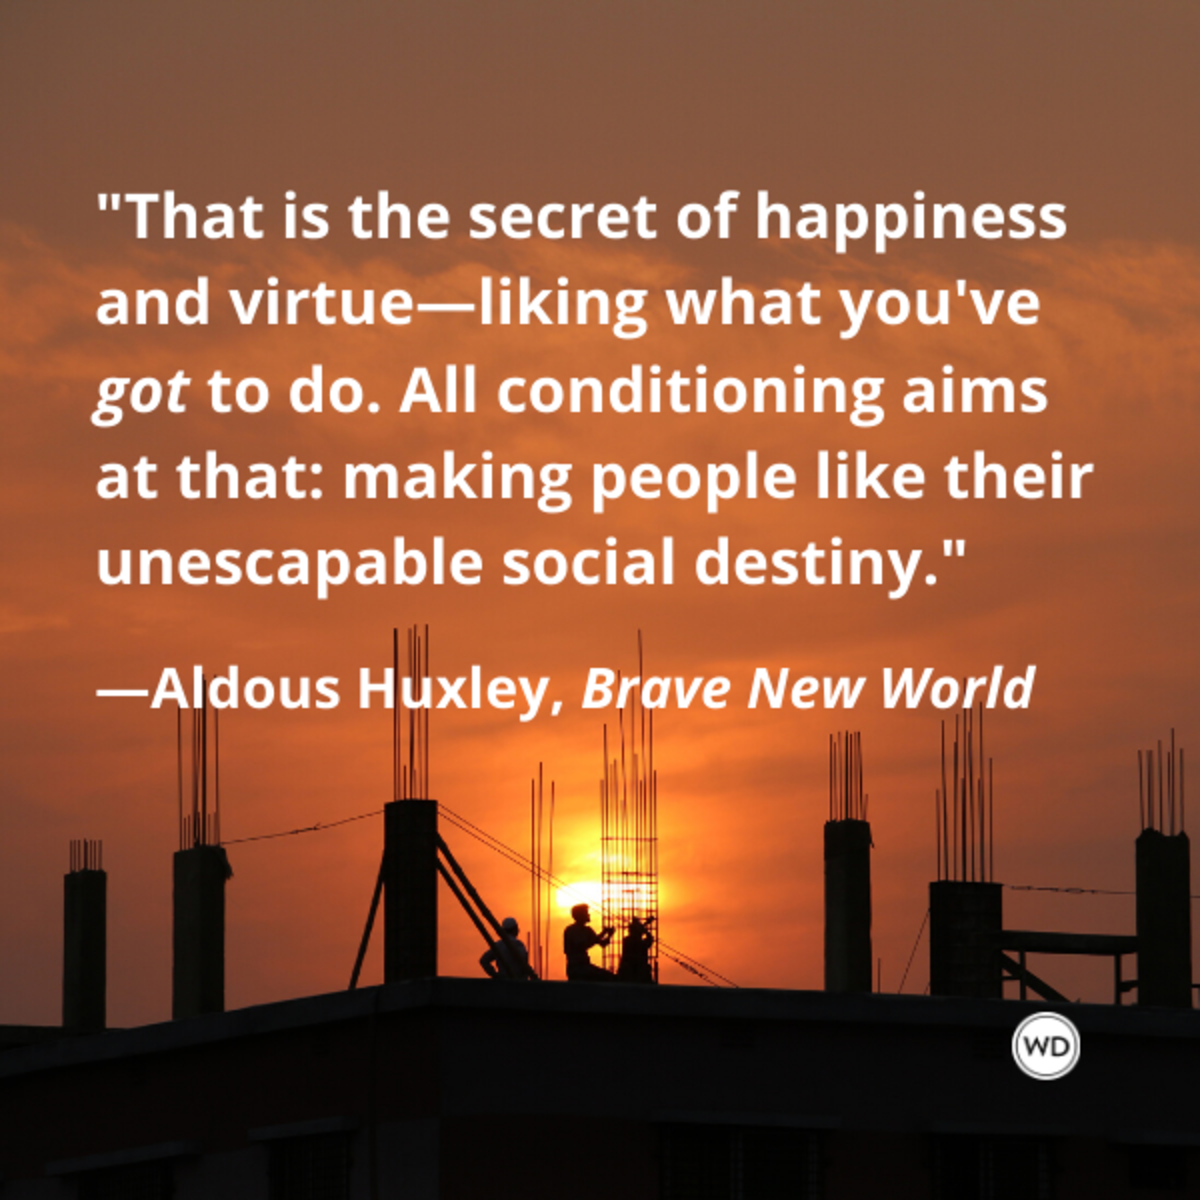 aldous_huxley_brave_new_world_quotes_that_is_the_secret_of_happiness_and_virtue_liking_what_youve_got_to_do